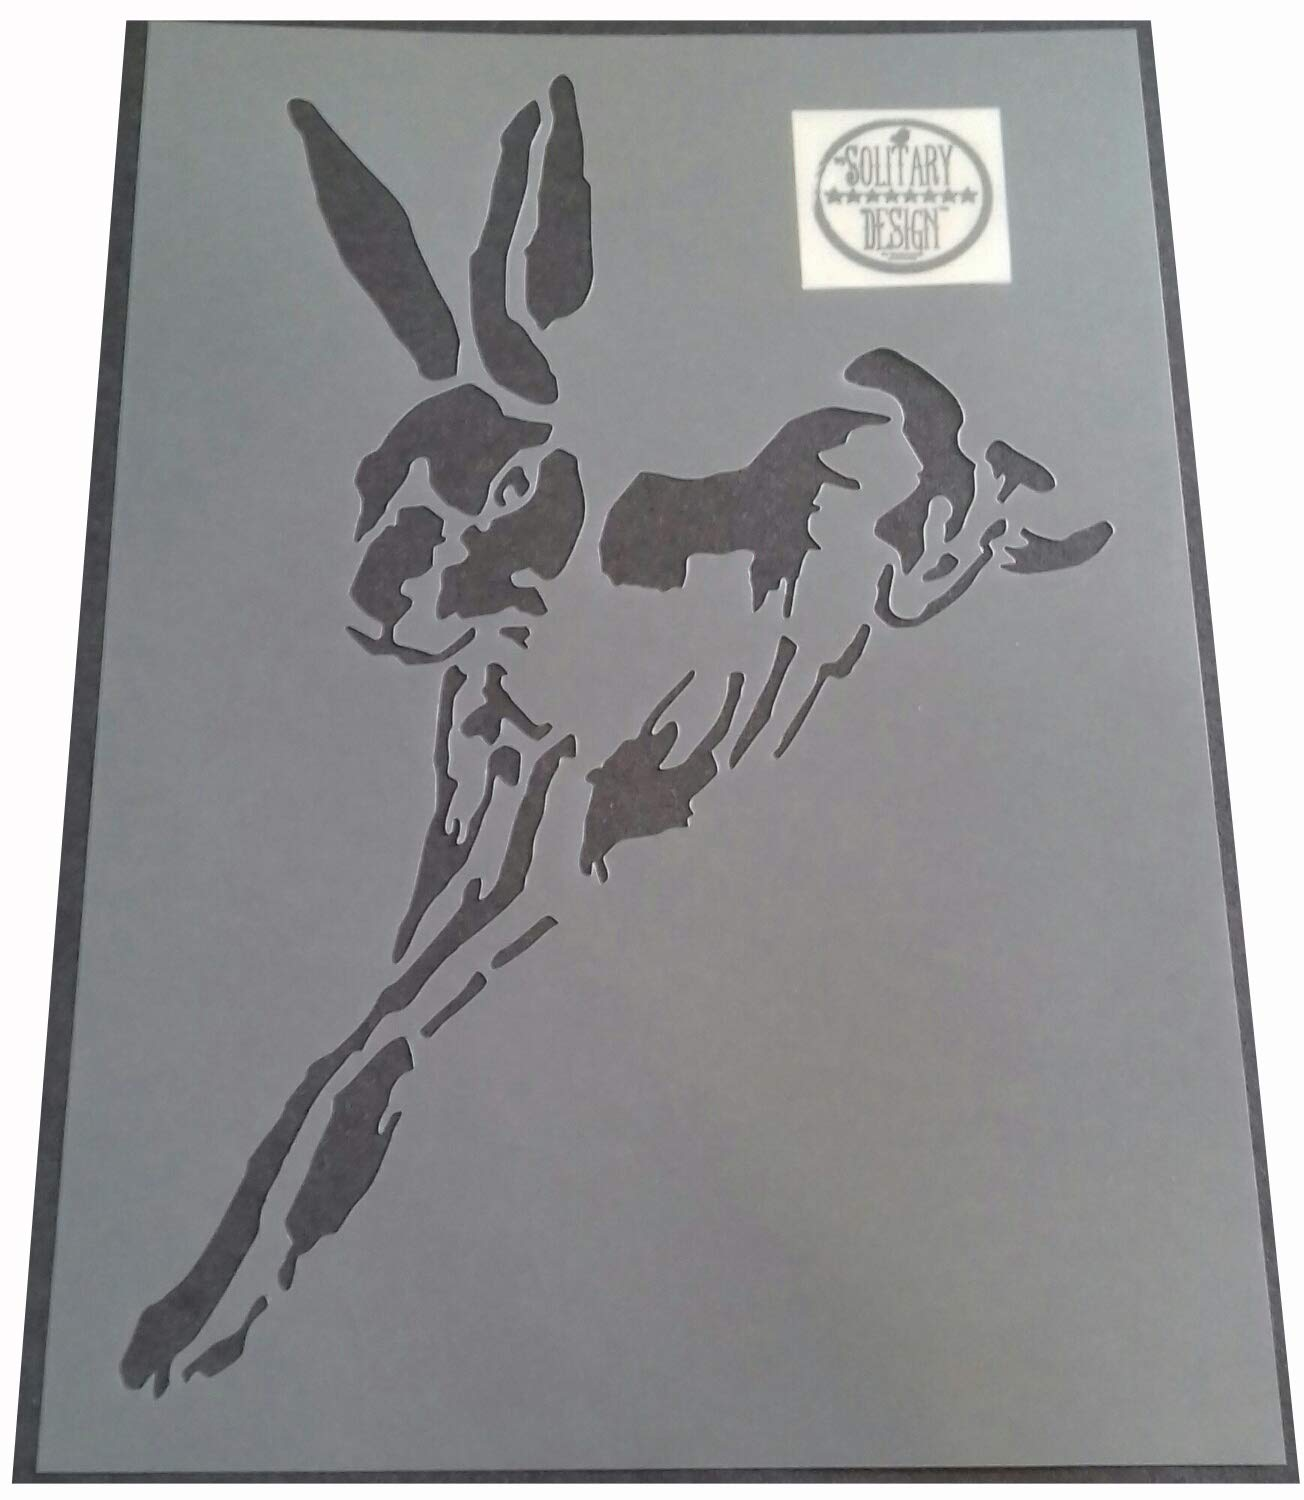 Solitarydesign Shabby Chic Stencil Artistic style leaping Hare Rabbit Rustic Mylar Vintage A4 297x210mm wall + Furniture